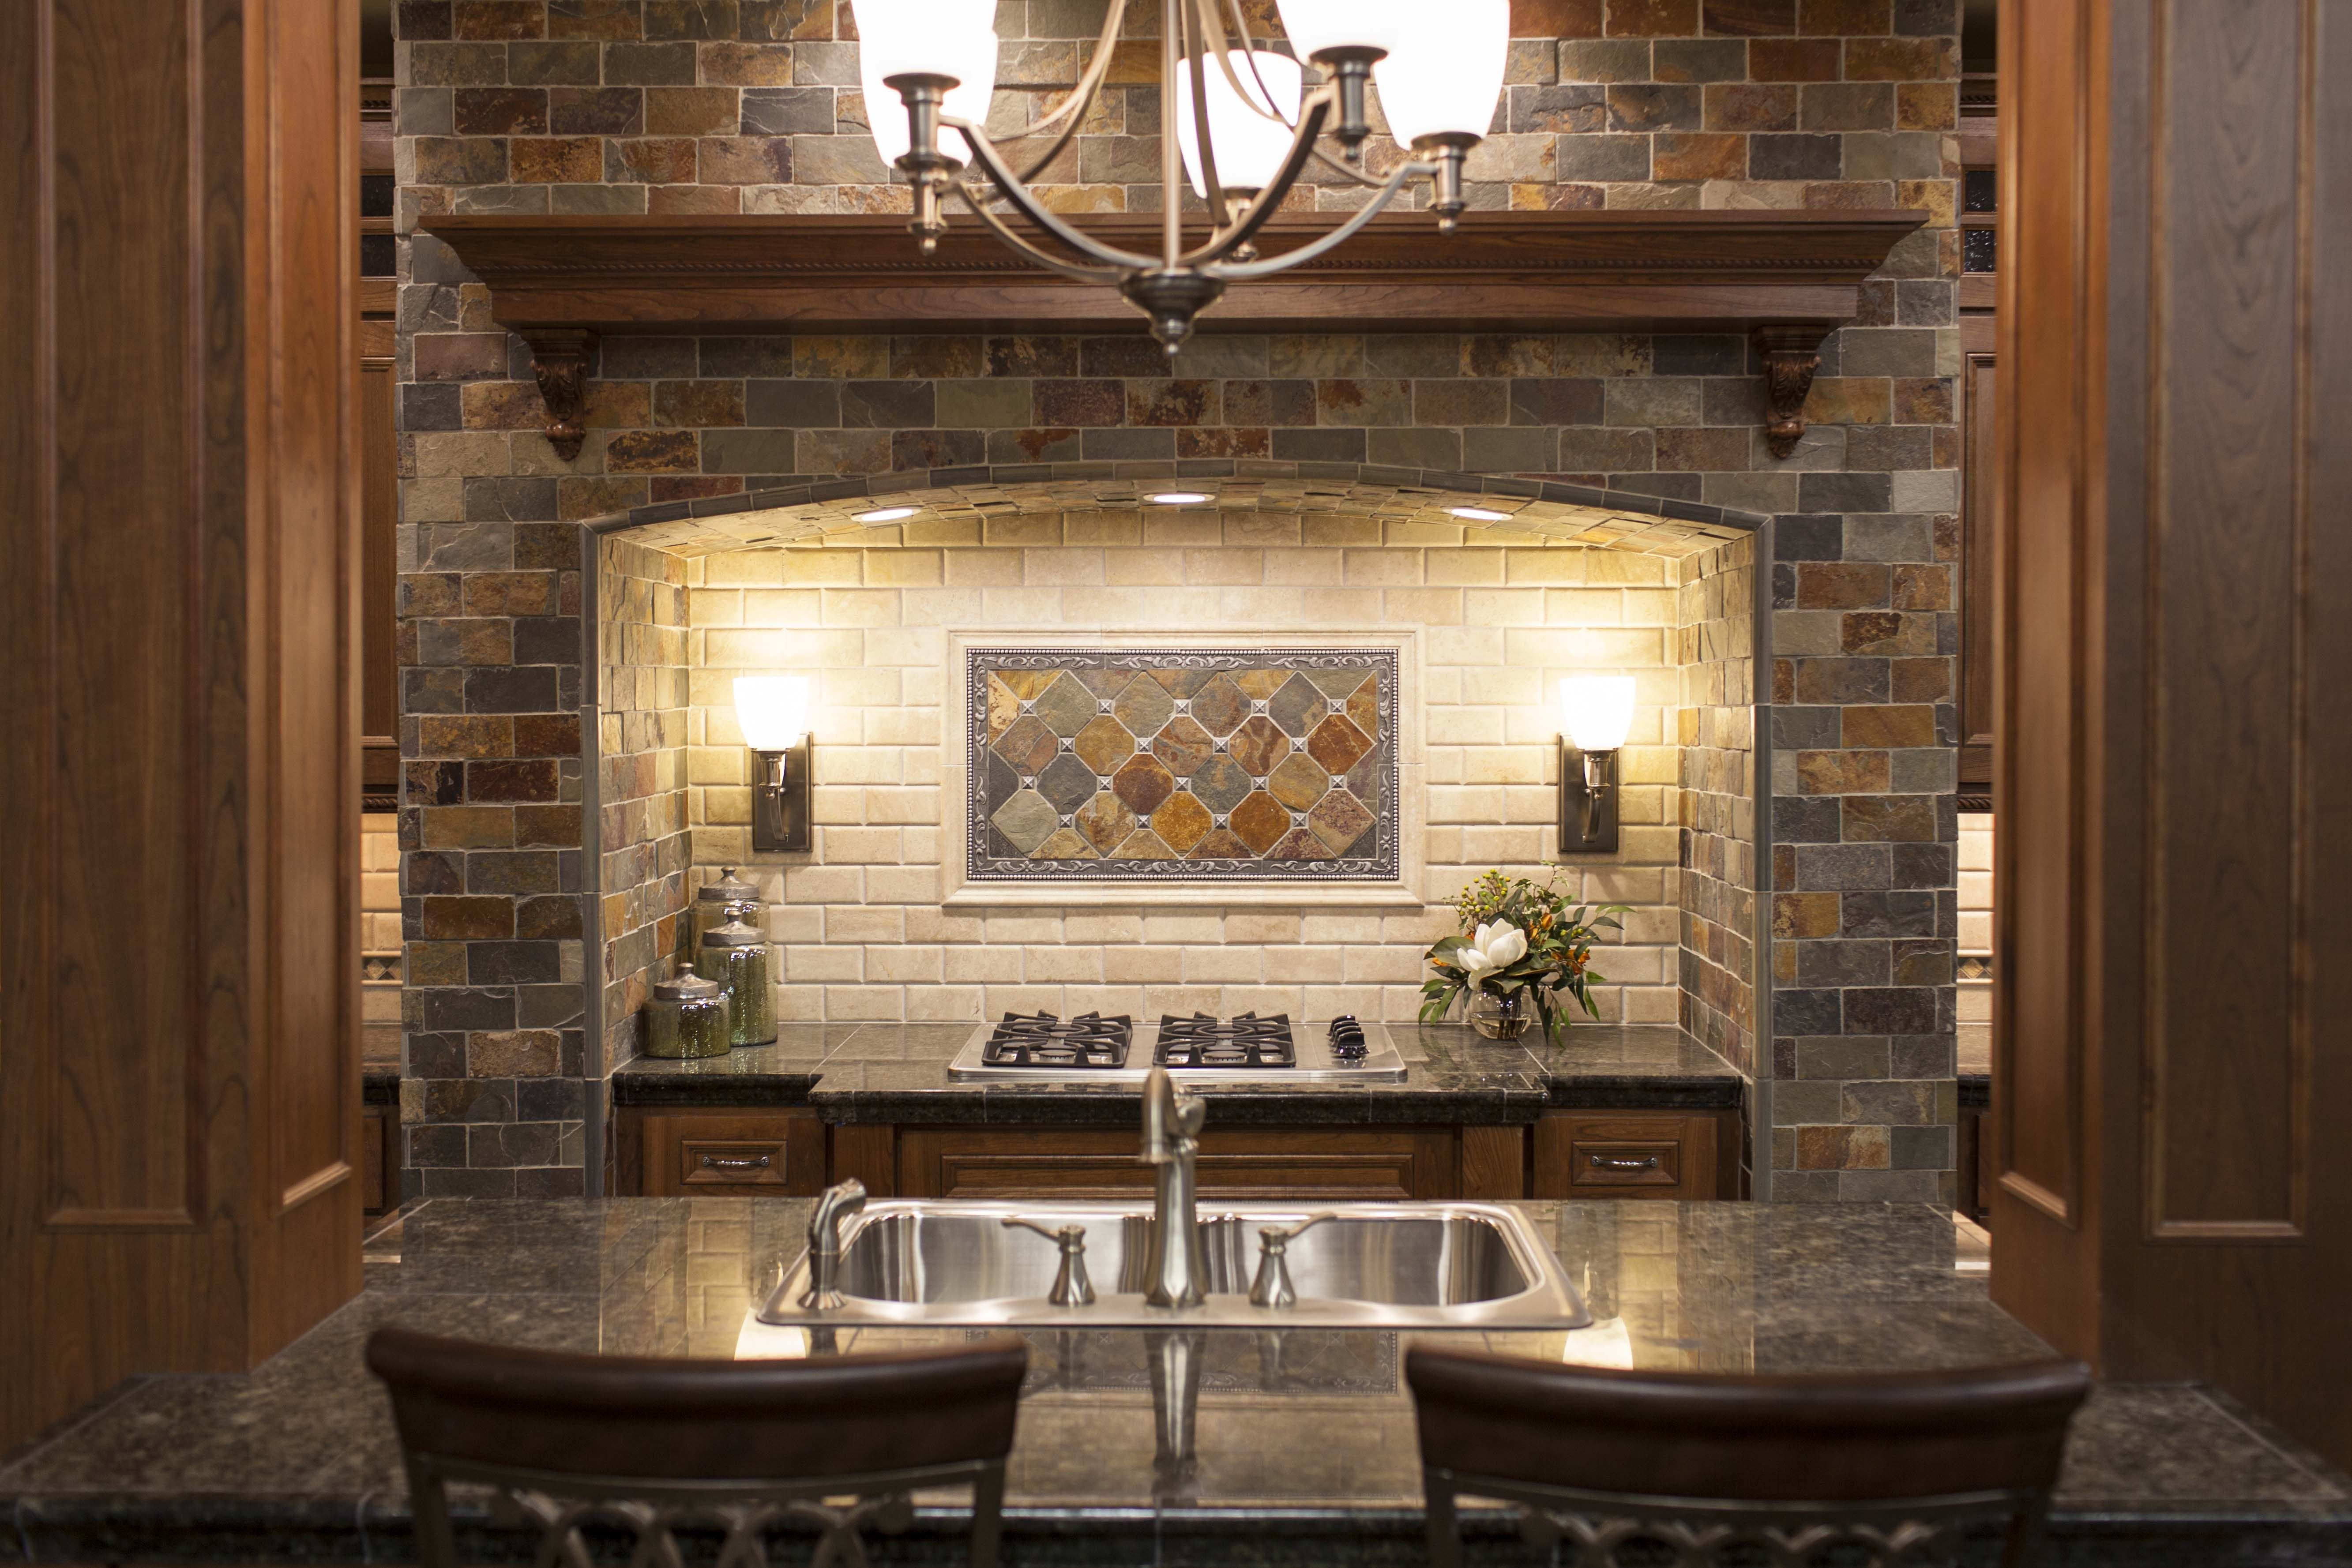 this hearth style backsplash is the focal point of this kitchen